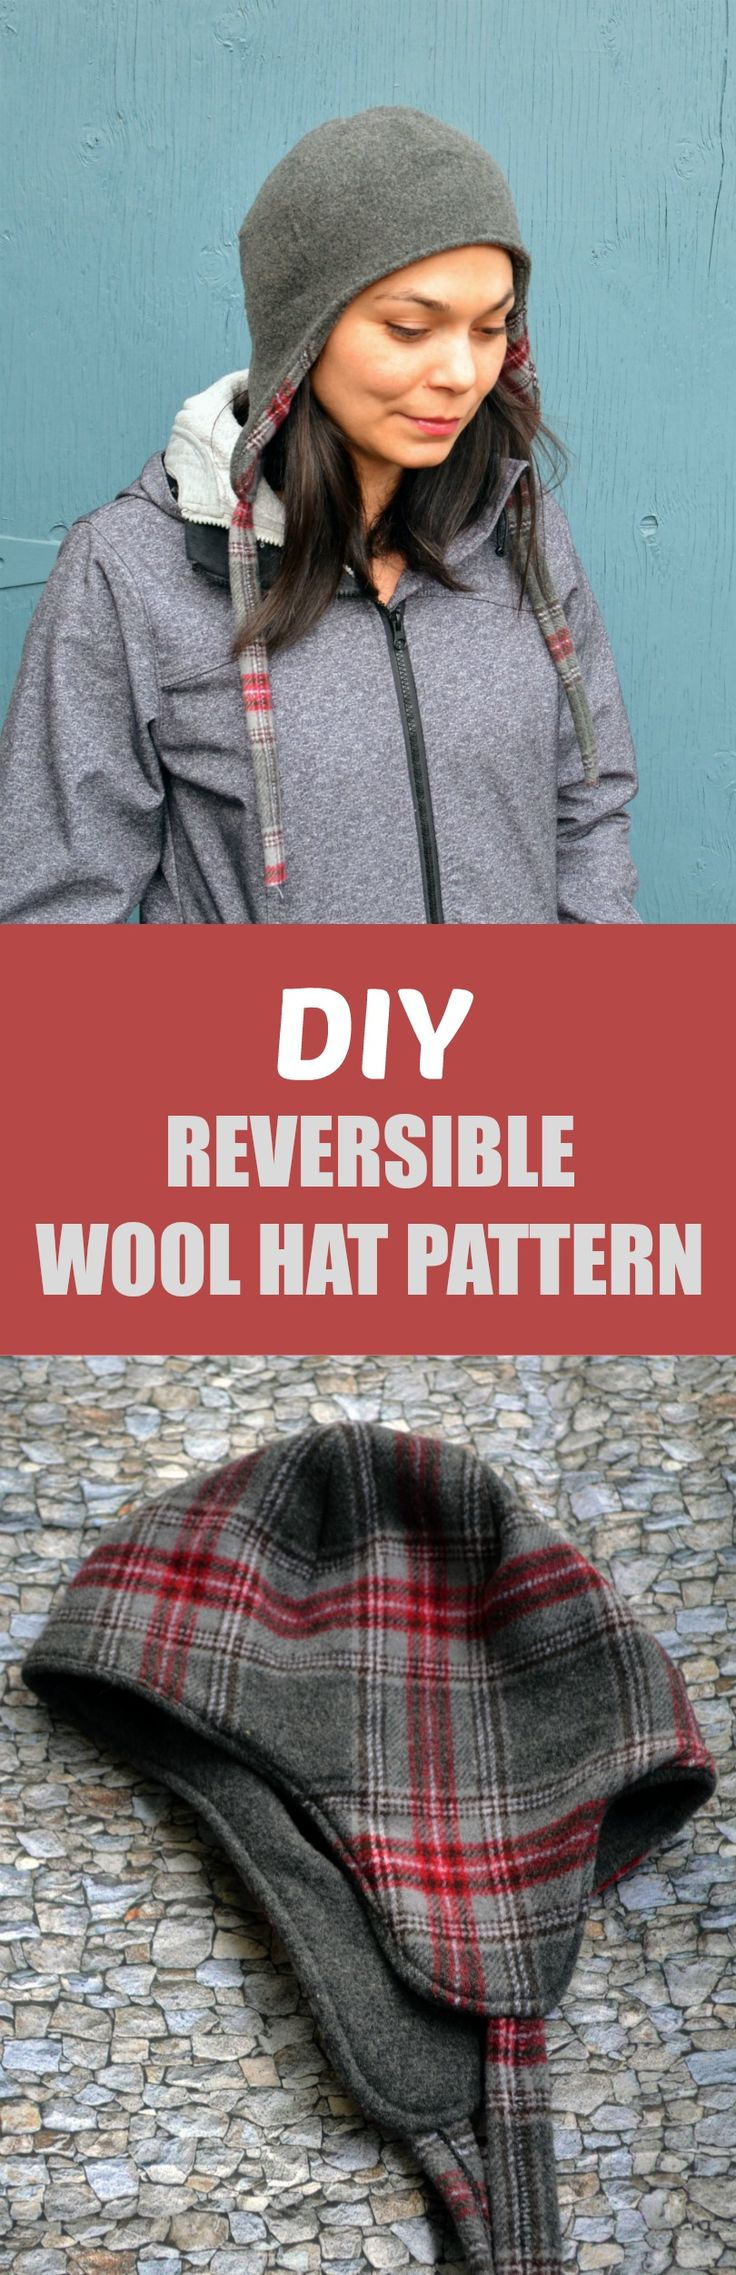 DIY Reversible Wool Hat Pattern: Learn how to make an easy, cute and simple reversible hat for women. Pattern and full step by step sewing tutorial included